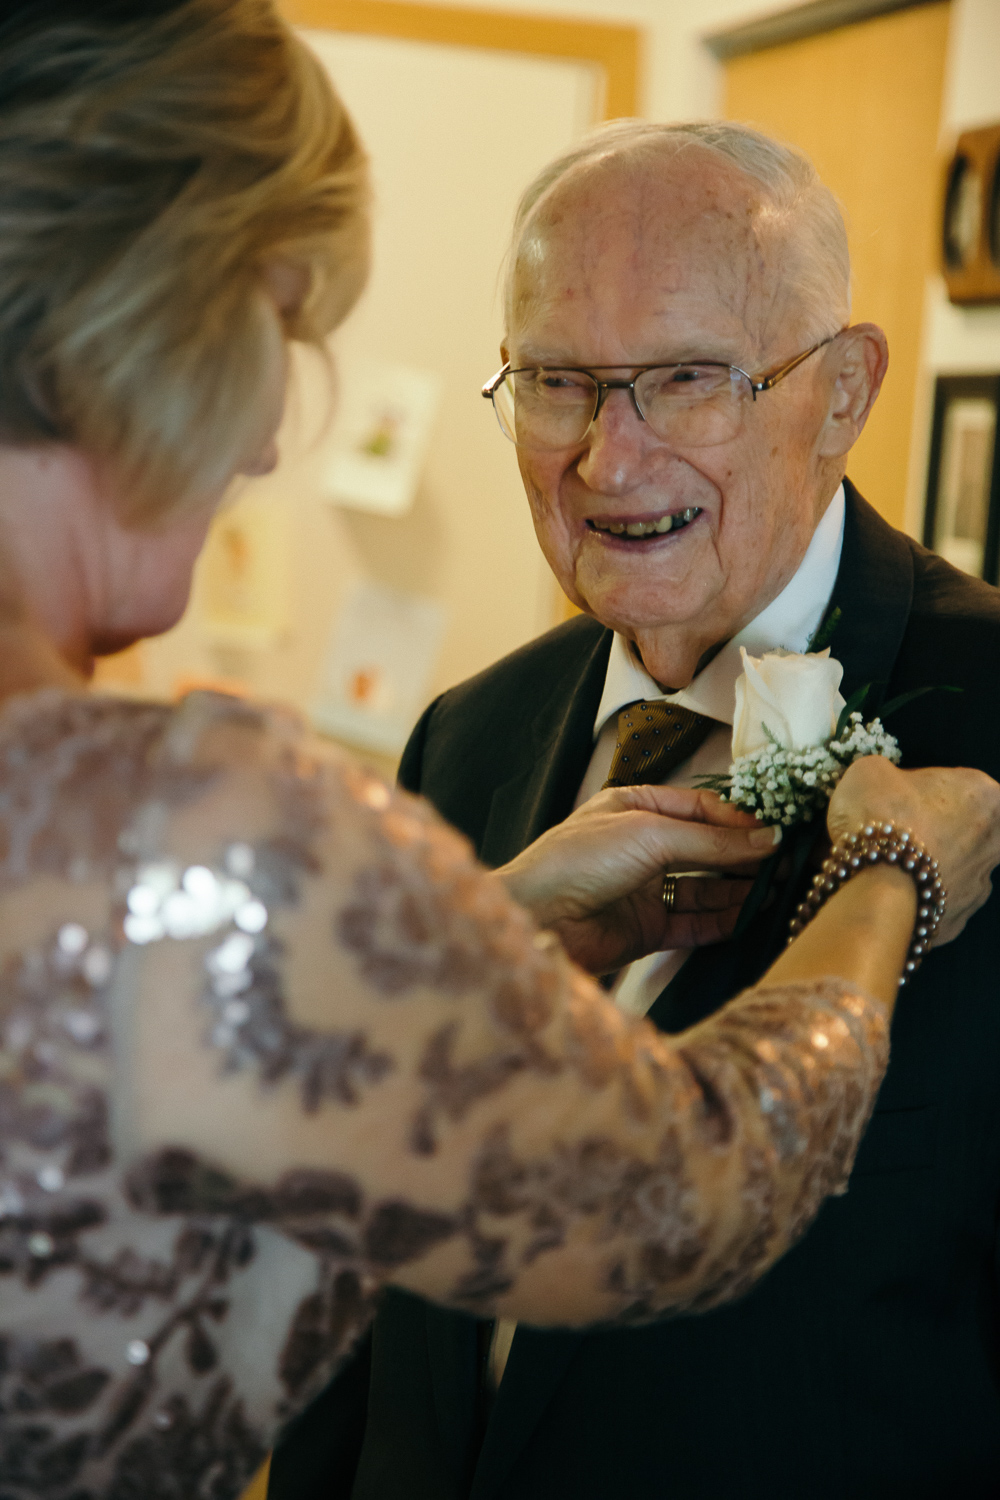 elderly_wedding-23.jpg